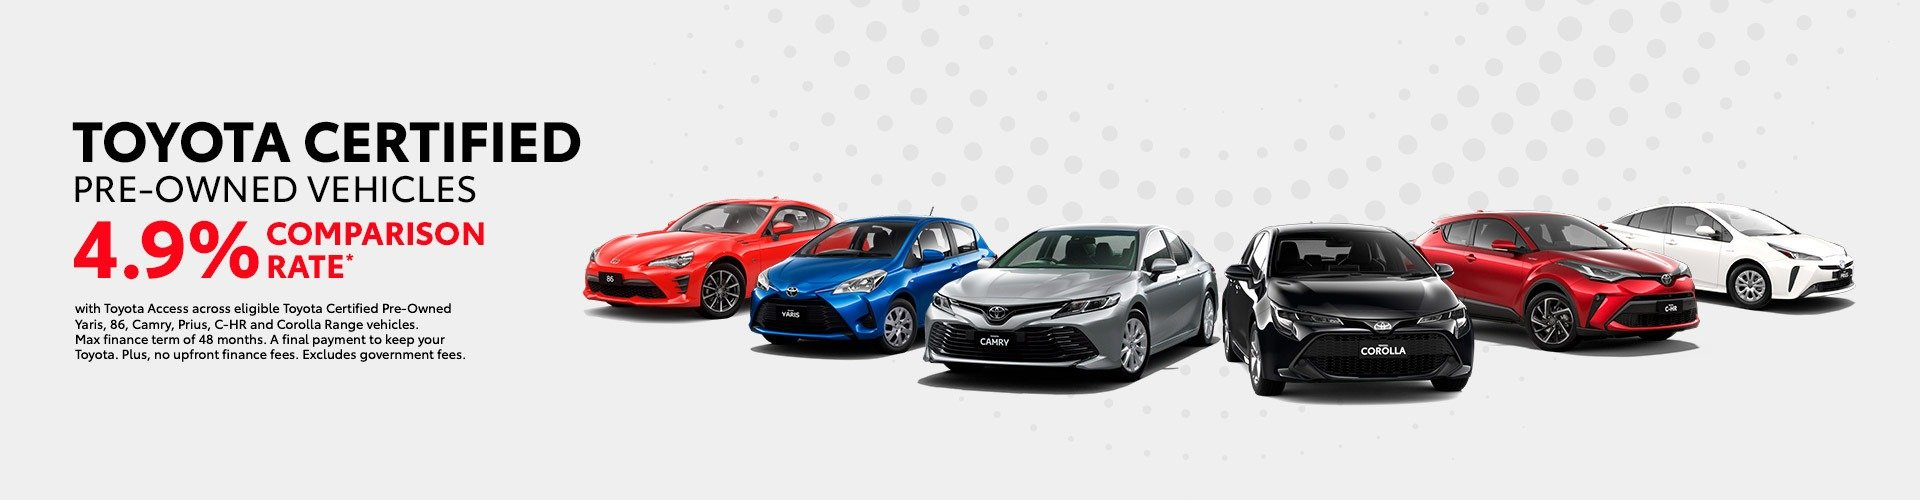 Scarboro Toyota - Certified Pre-Owned Vehicle 4.9% Finance Offer